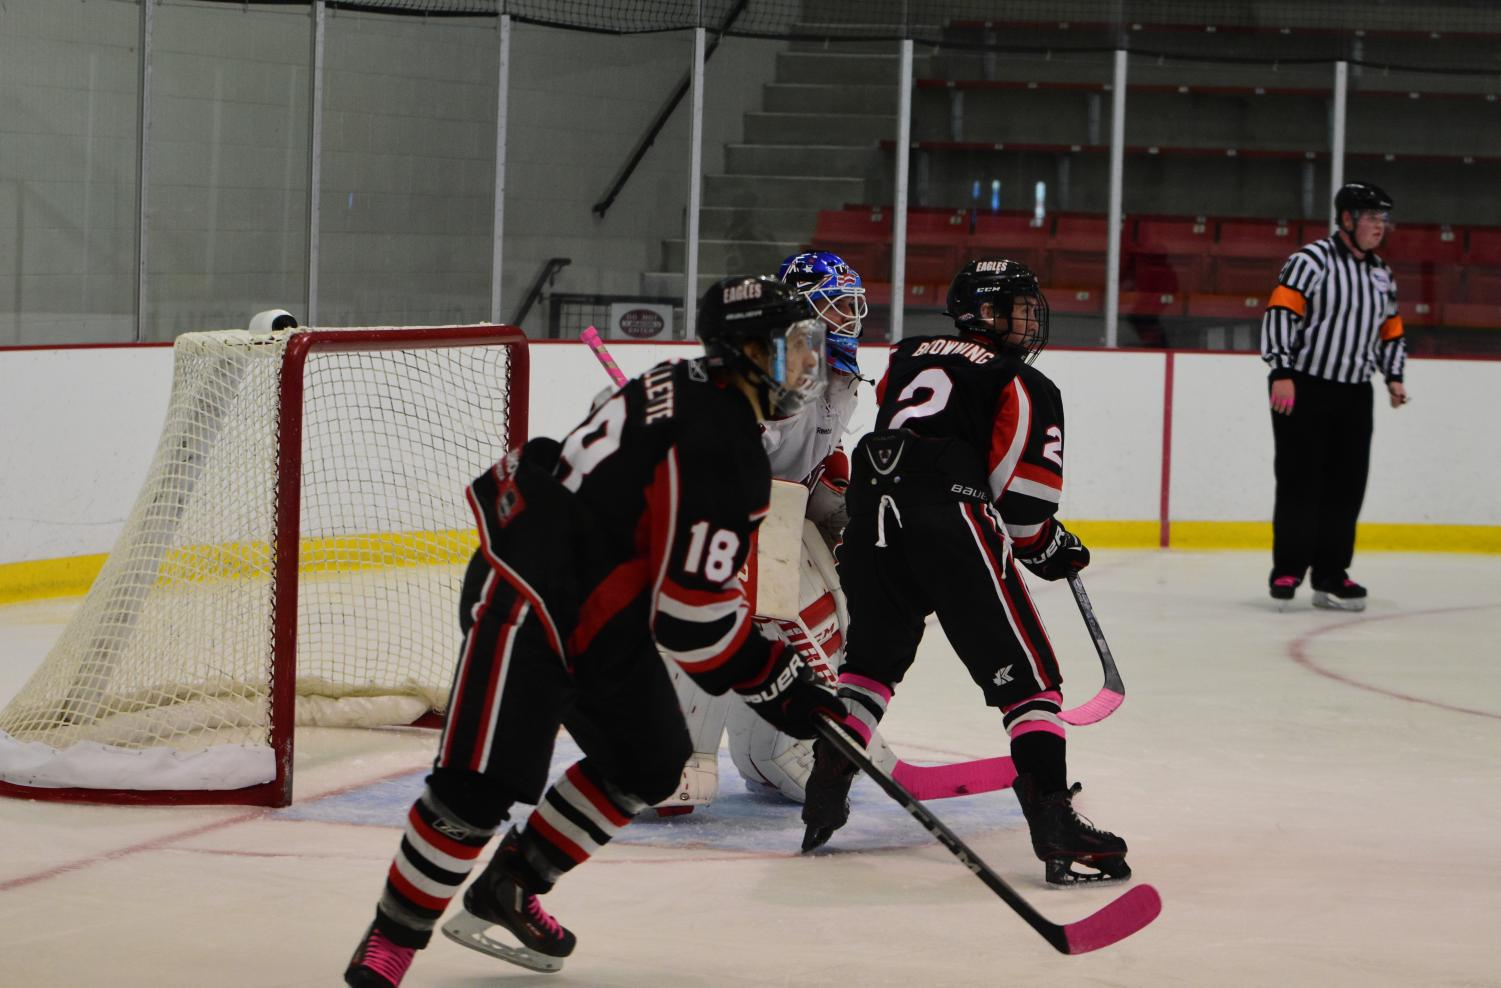 Two hockey club members in a game against Washington State this season. The club recently joined the Pac-8, a Division II conference in the American Collegiate Hockey Association | Photo courtesy of EWU Hockey Club